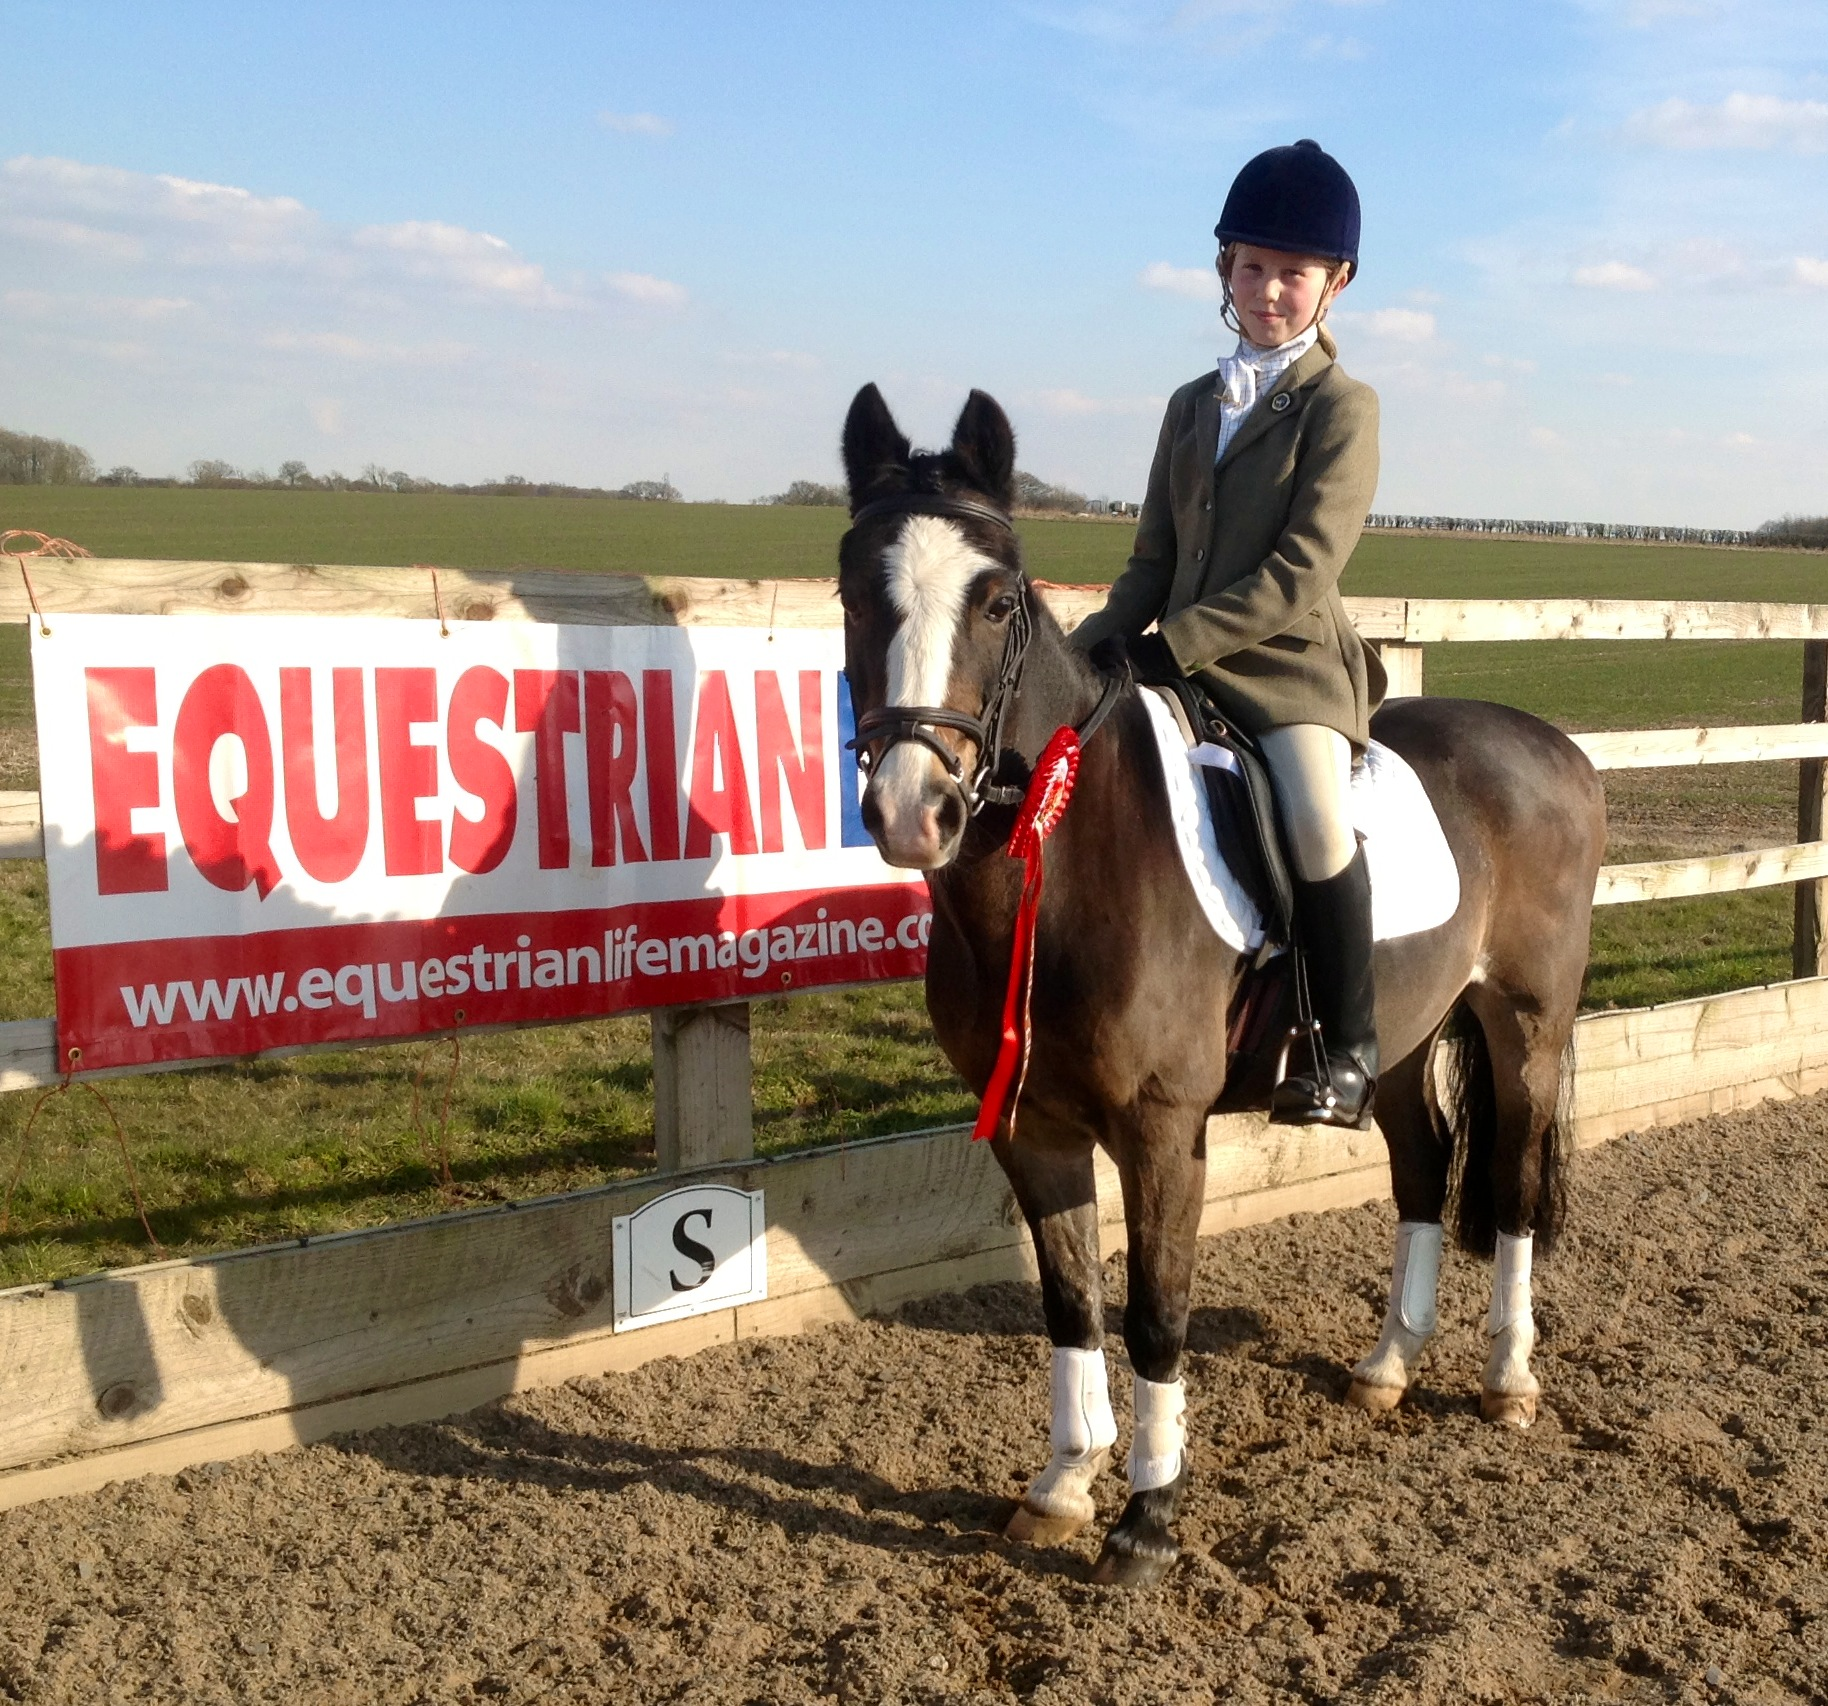 Dressage Champs pic - Happy faces at the Equestrian Life Dressage Champs